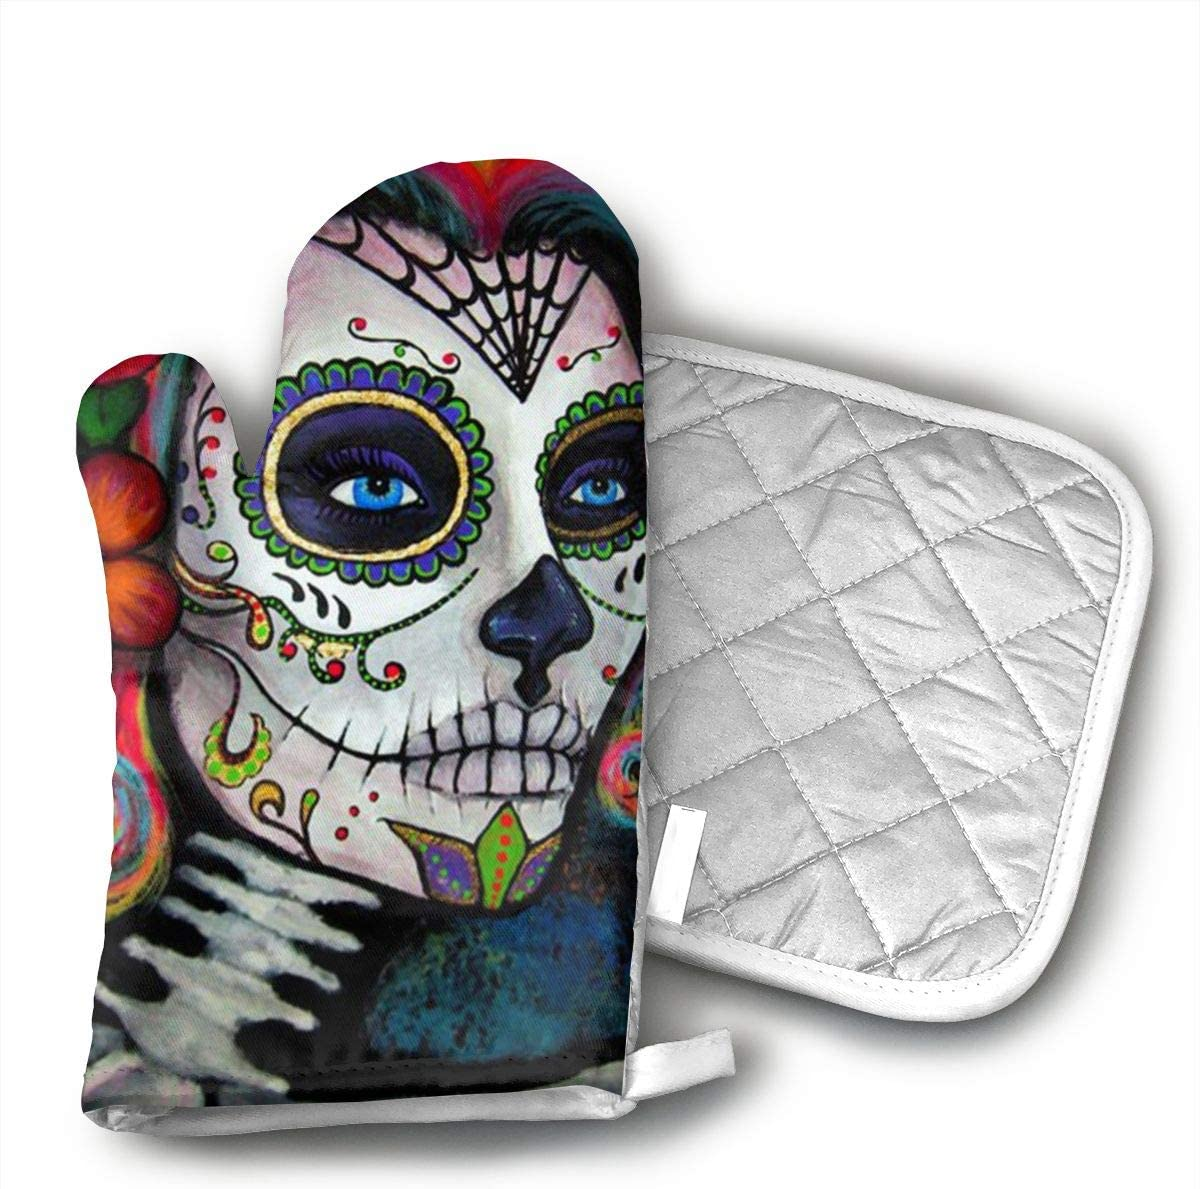 Sugar Skull Candy Oven Mitts And BBQ Gloves Pot Holders, Heat Resistant Mitts For Finger Hand Wrist Protection With Inner Lining, Kitchen Gloves For Grilling Machine Baking Grilling With Non-Slip